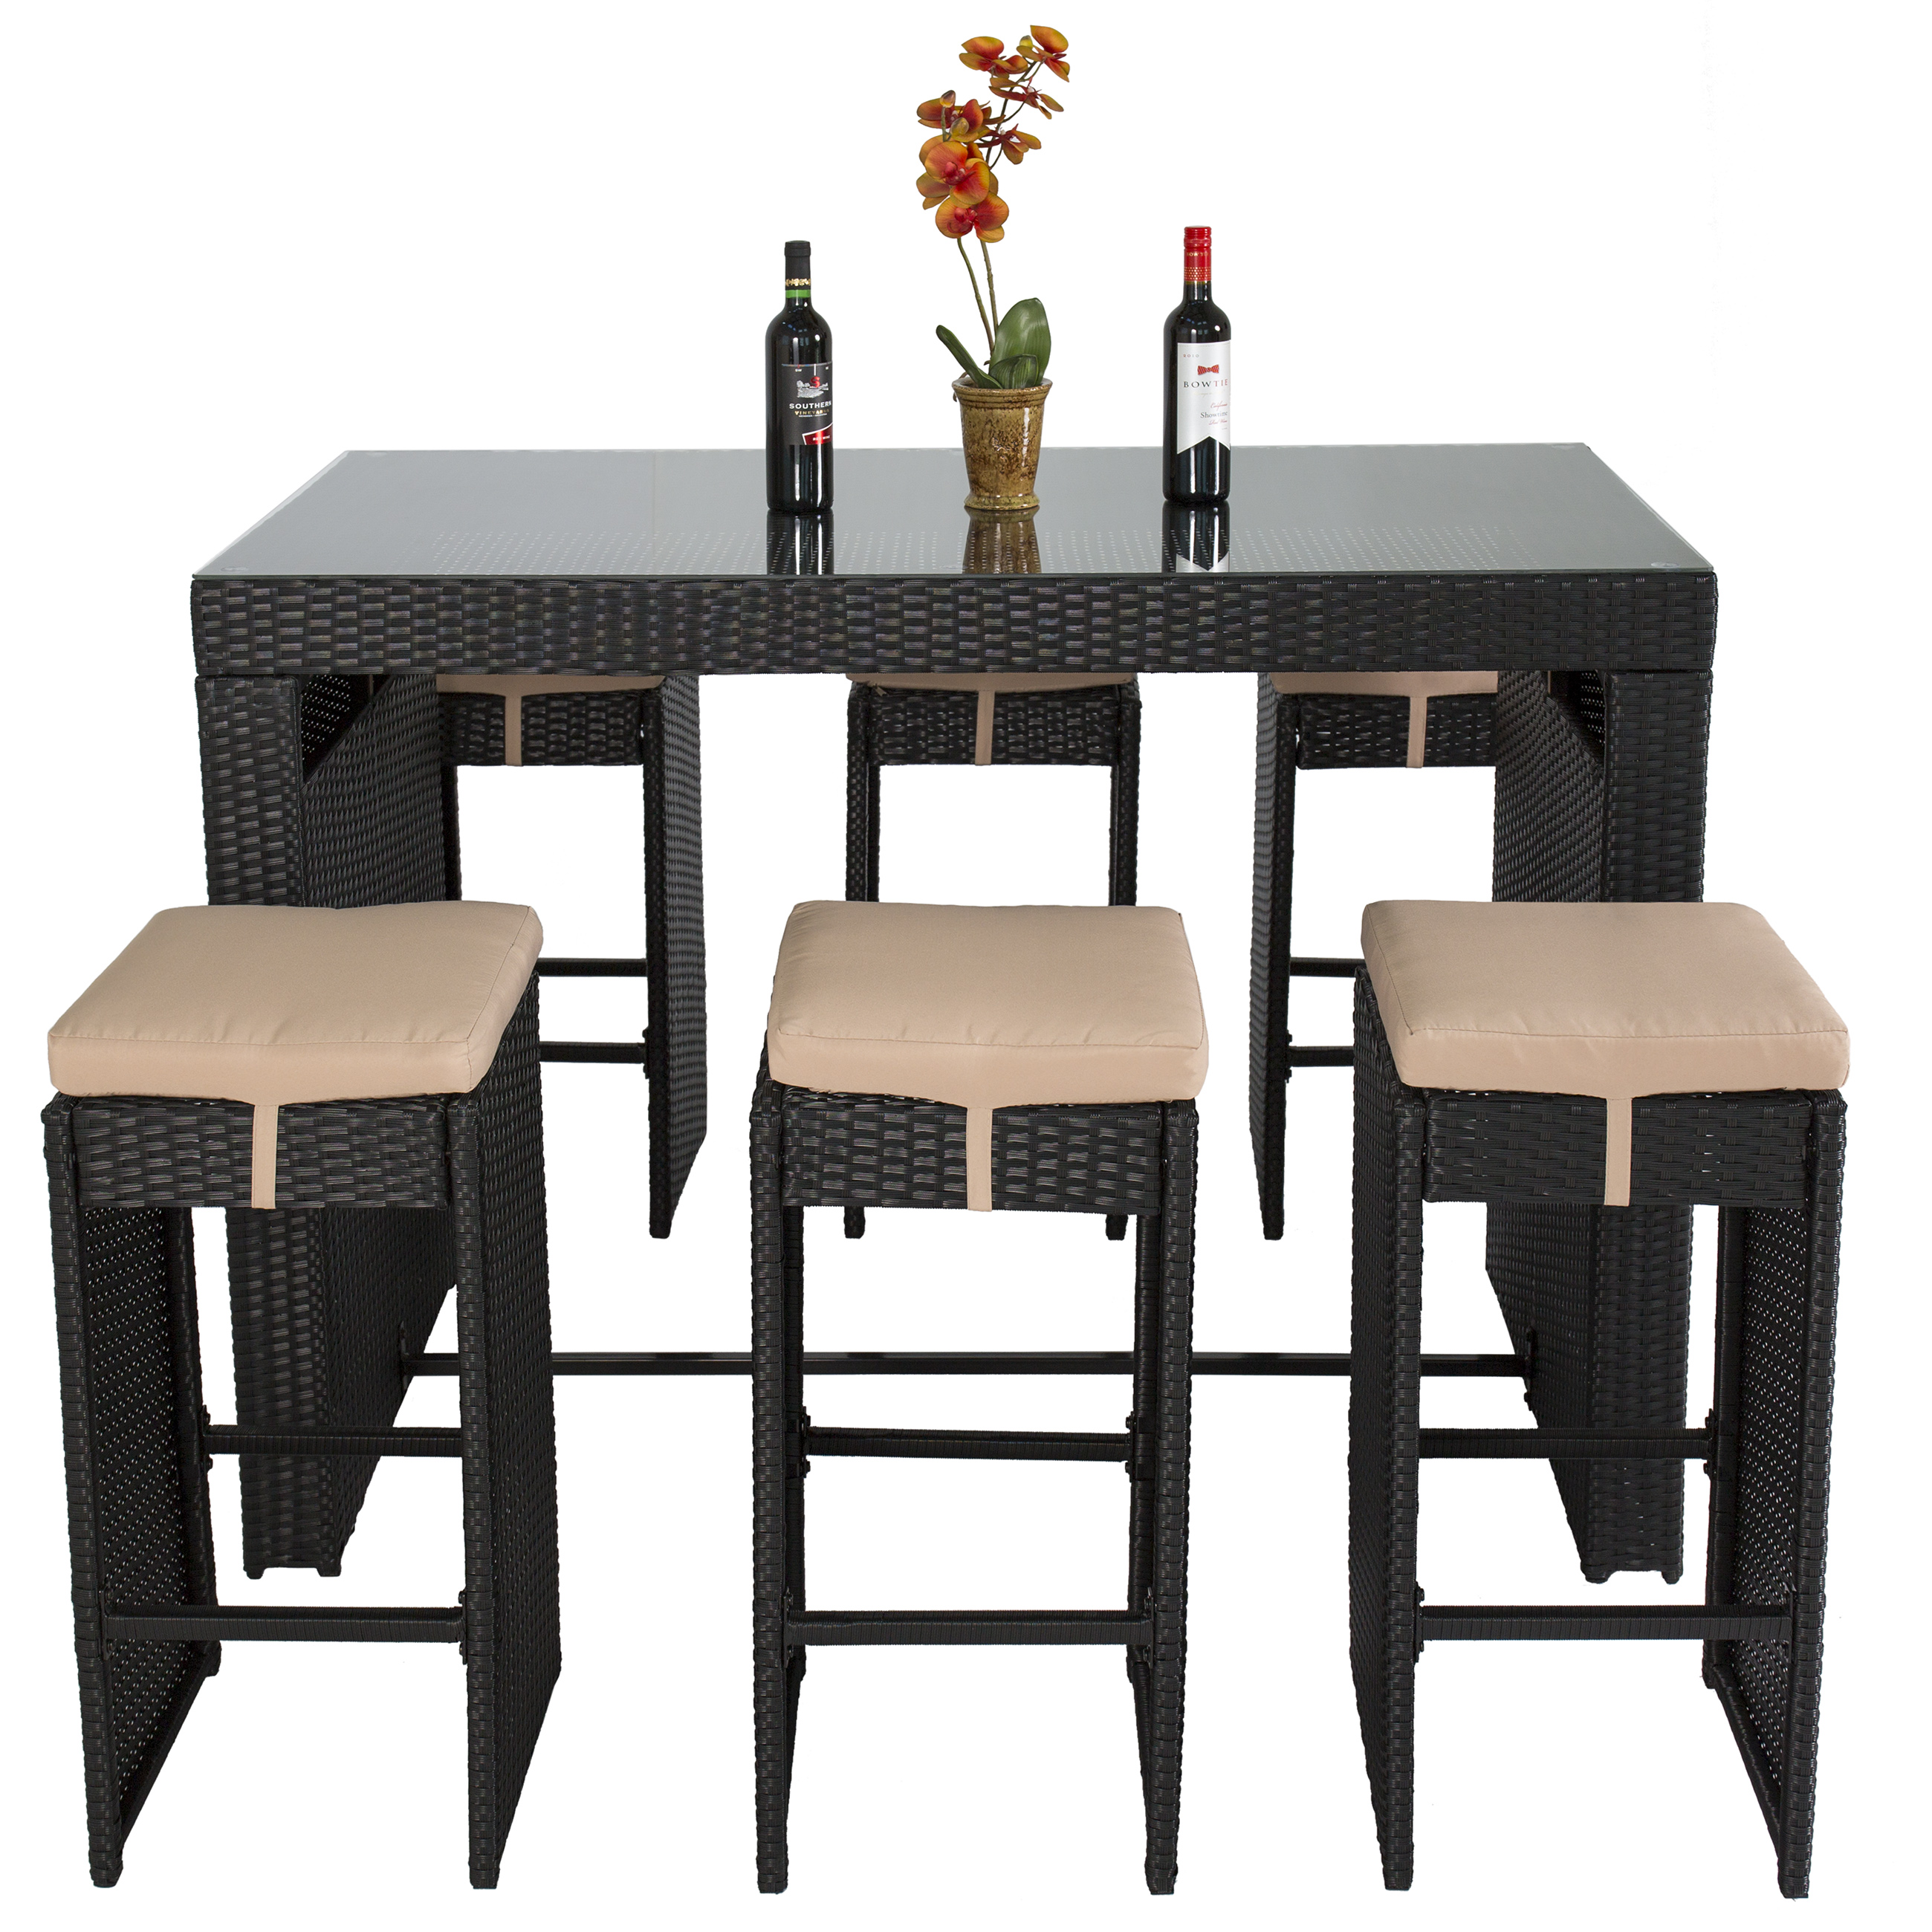 Best Choice Products 7 Piece Outdoor Rattan Wicker Bar Dining Patio  Furniture Set W/ Glass Table Top, 6 Stools   Walmart.com